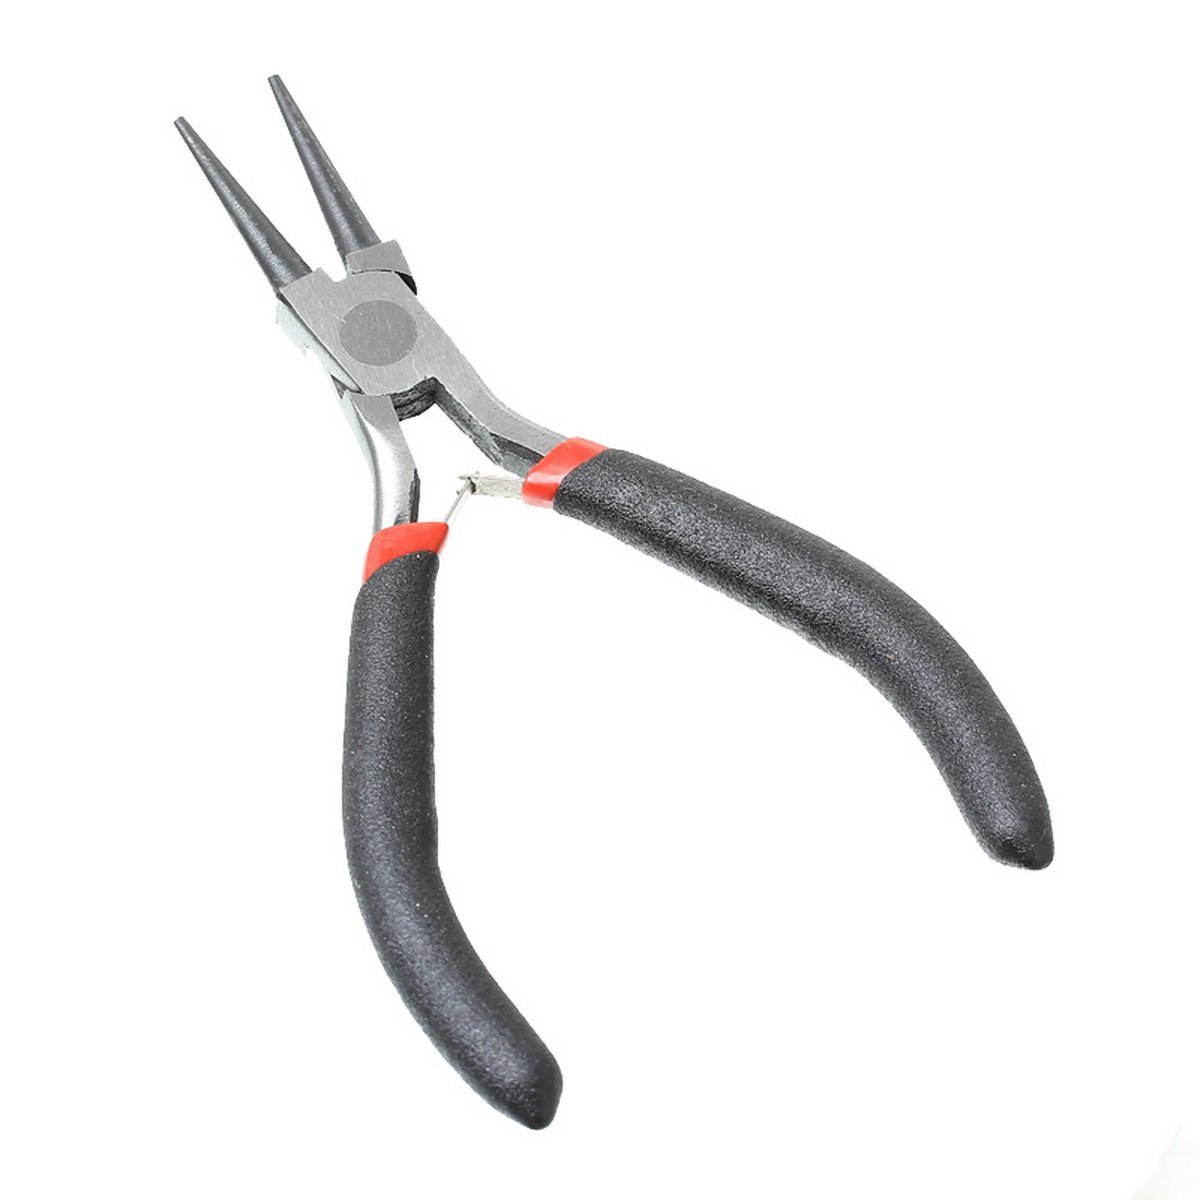 HOUSWEETY 1PC Stainless Steel Needle Nose Pliers Jewelry Making Black 12.5cm HOUSWEETYB33699CA